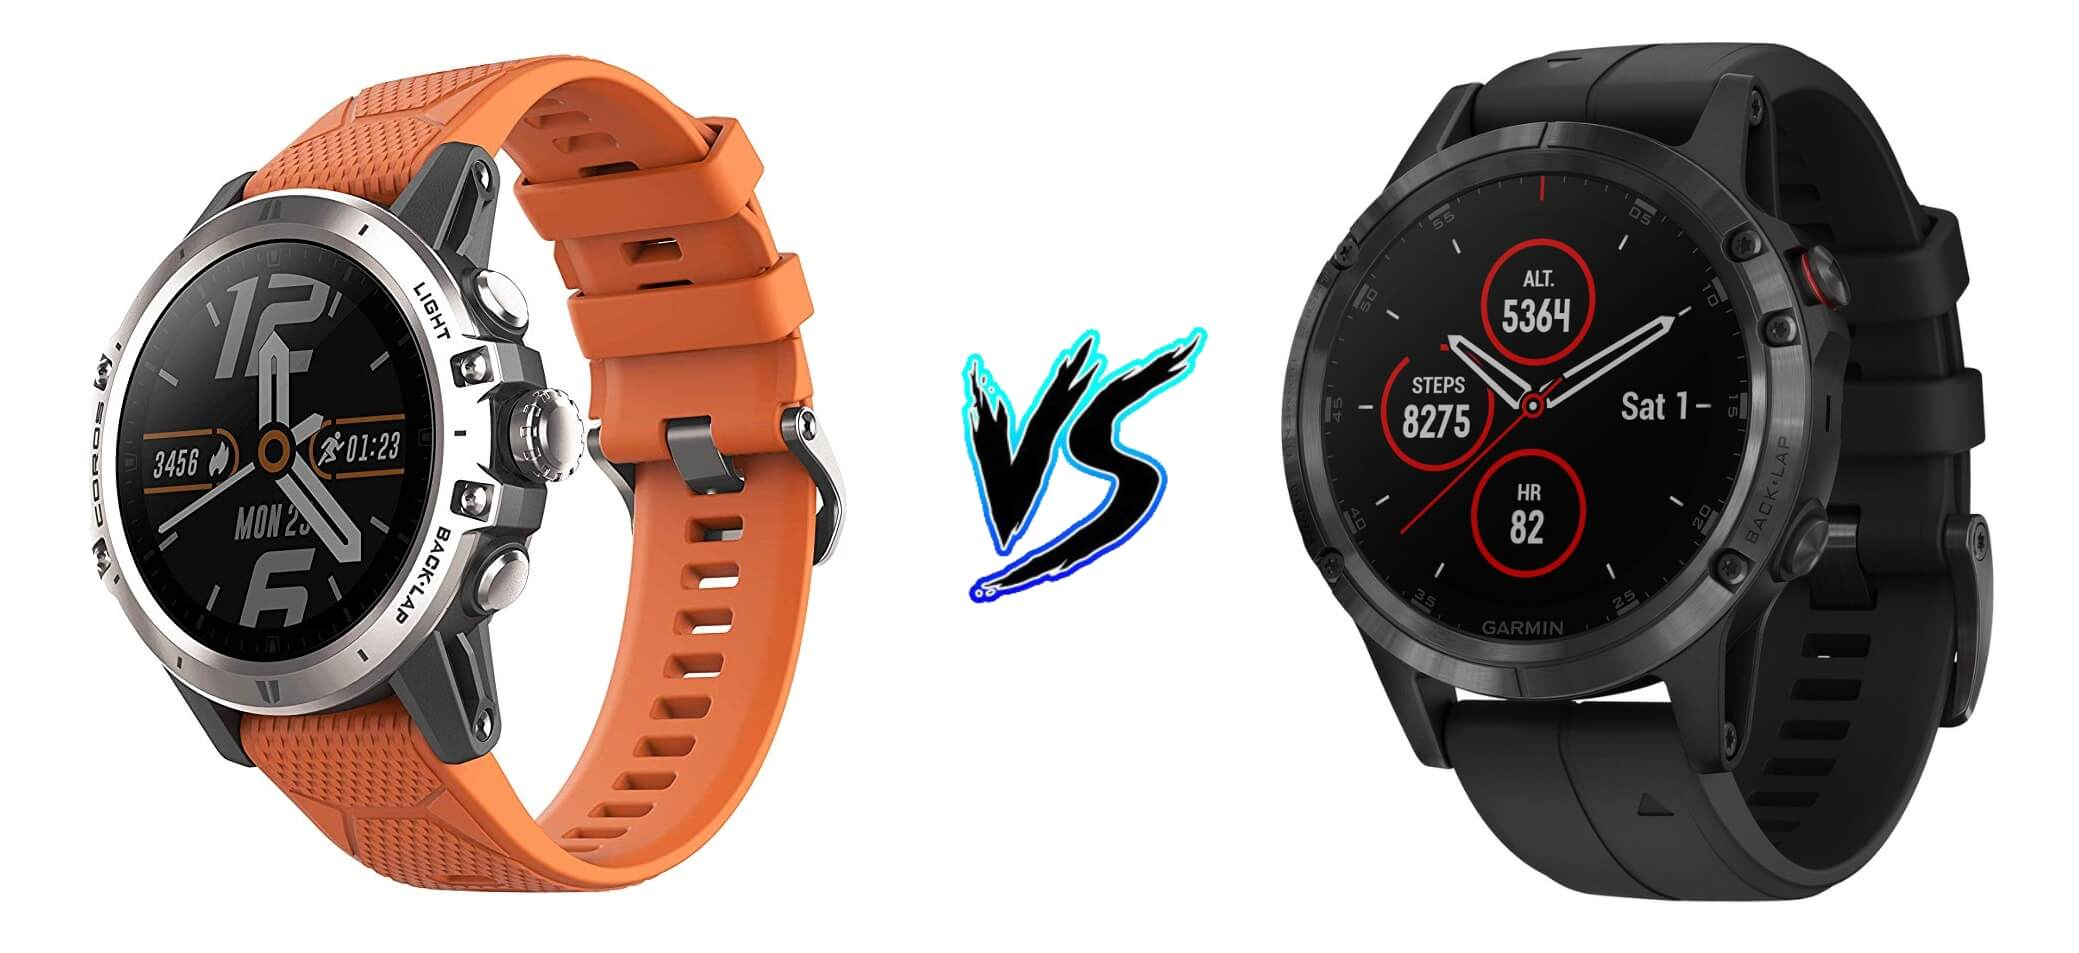 Coros Vertix vs Garmin Fenix 5 Plus